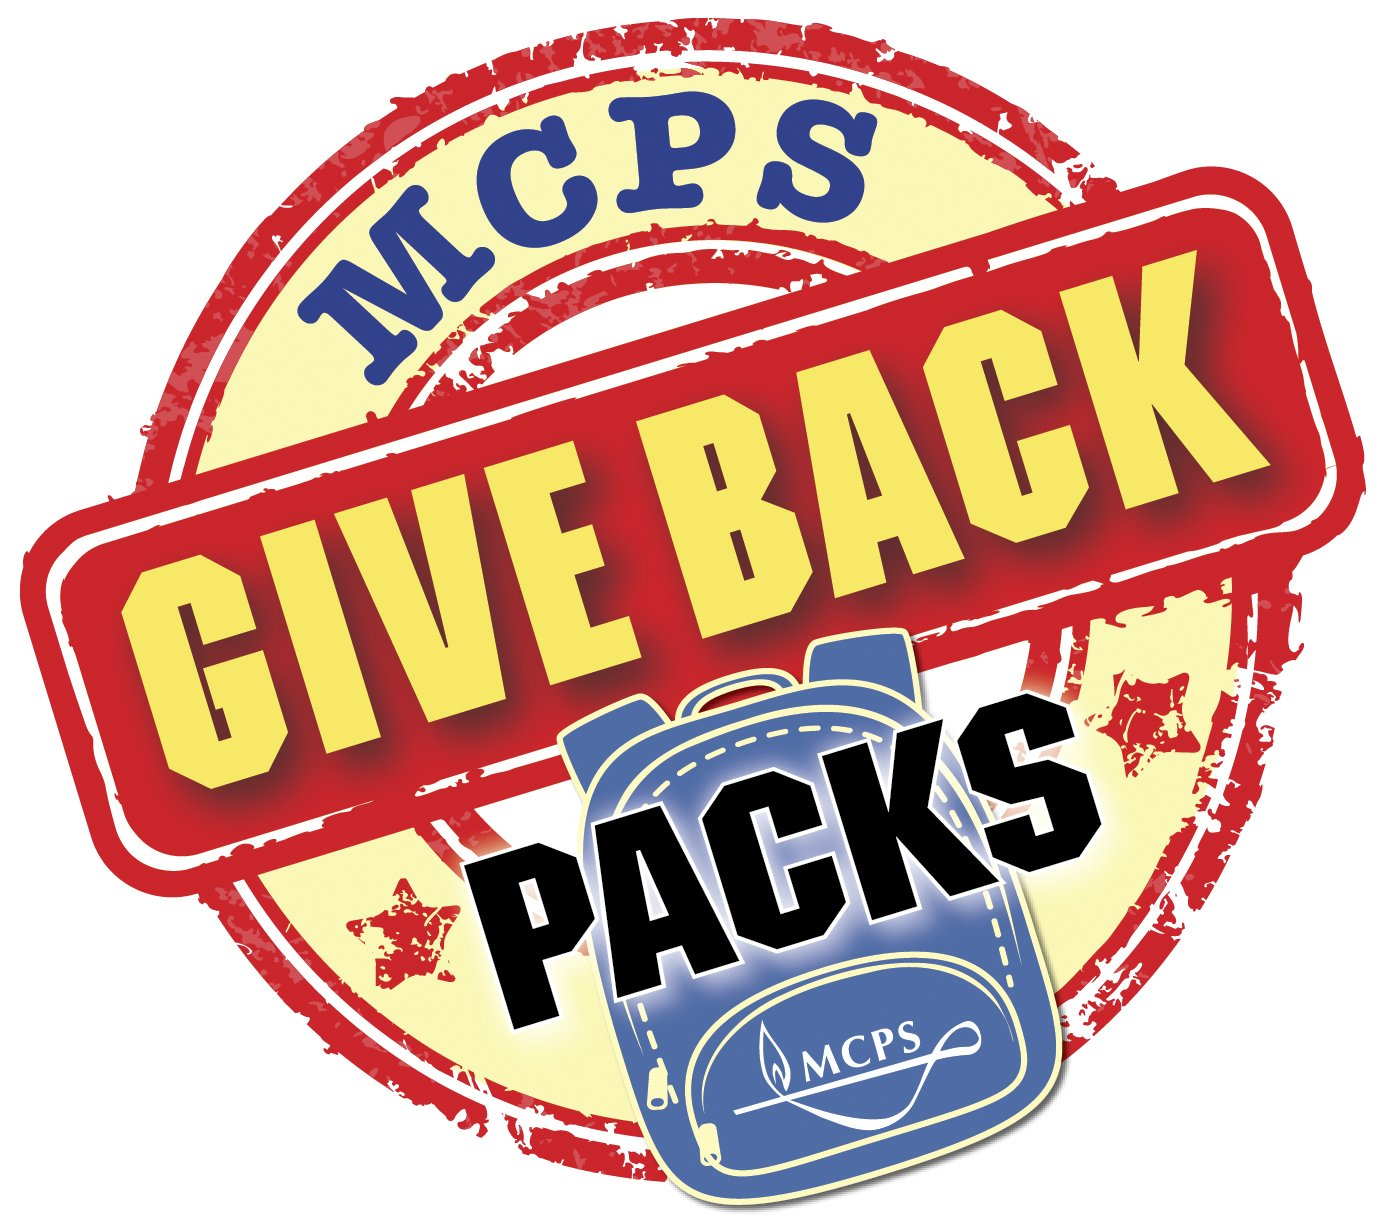 MCPS Give Backpacks Campaign is in full swing. Here is how you can help. https://t.co/69Dk4iN1kt #MCPSGives https://t.co/N3bnocdYMk